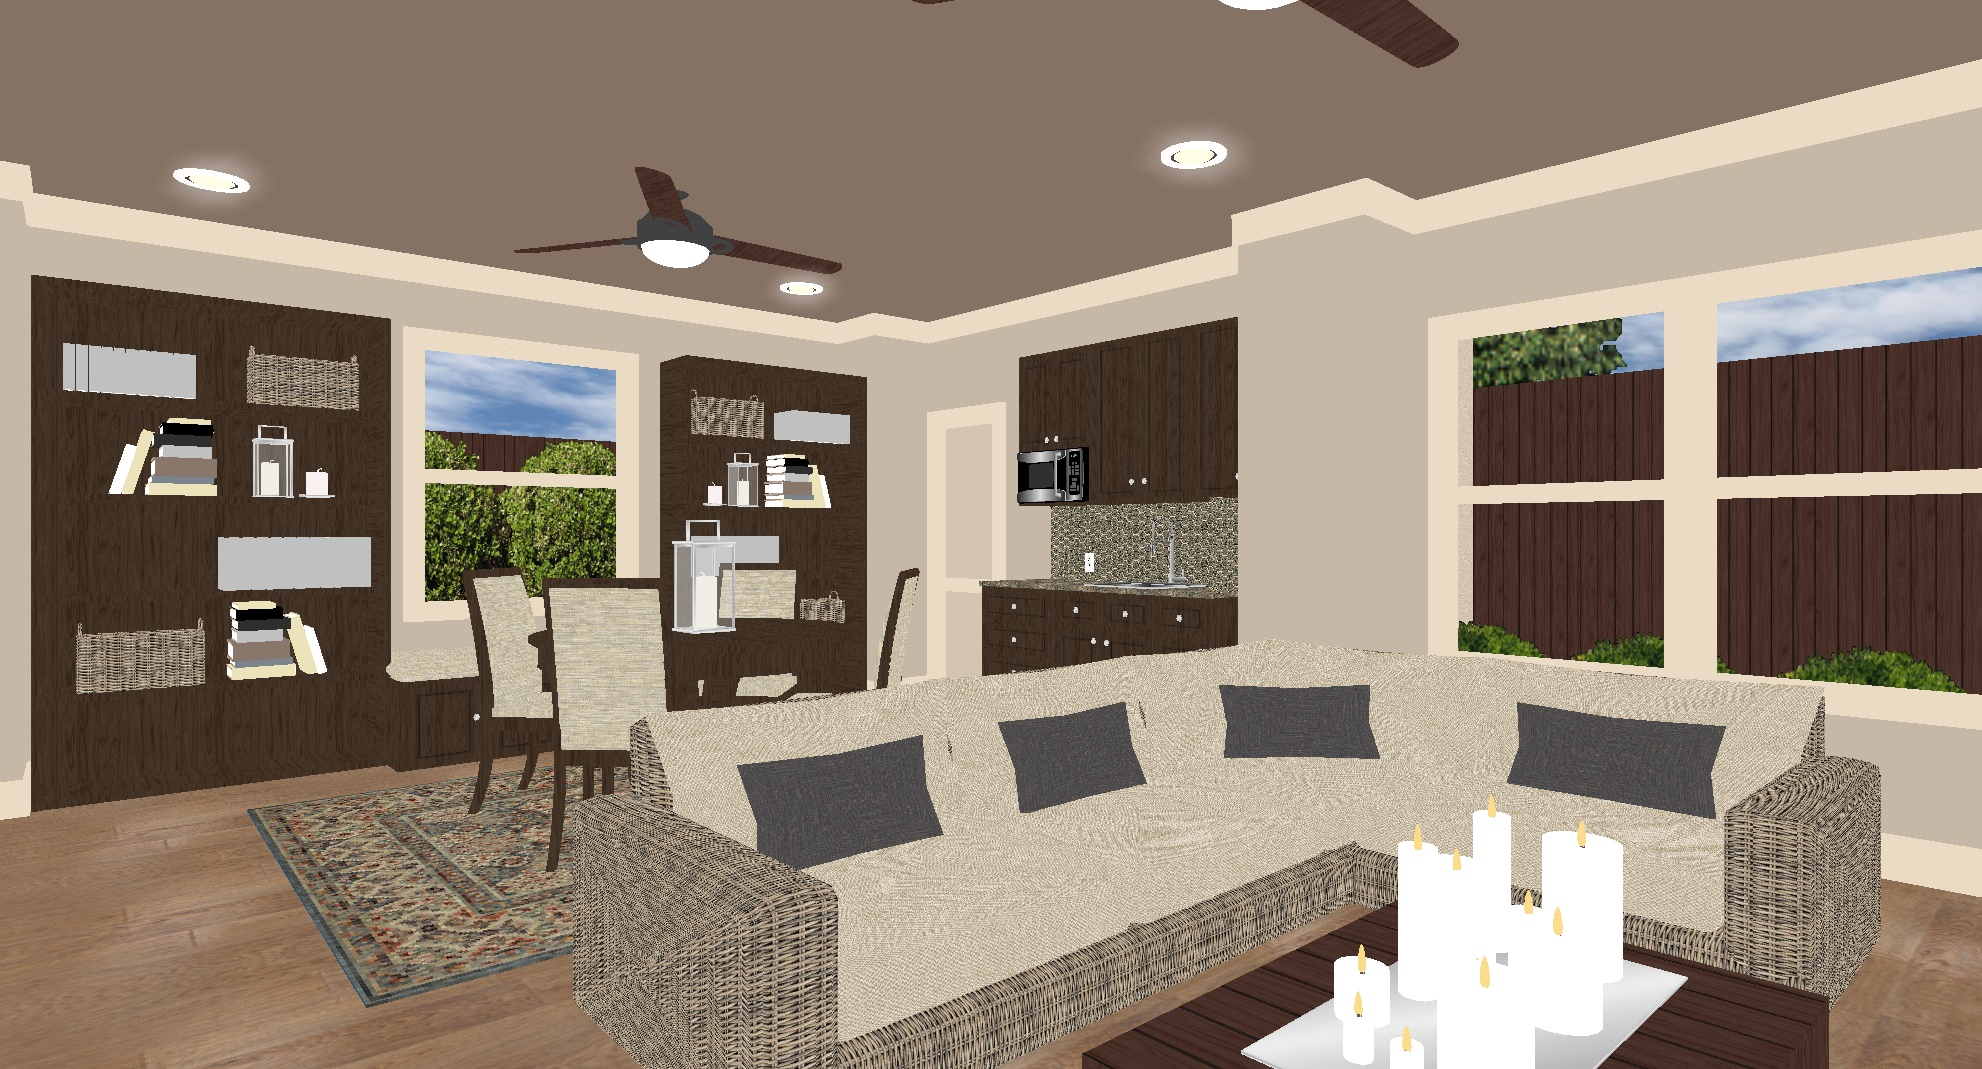 3D Design Ex&les & Interior Design 3D Design Examples - Outdoor Homescapes of Houston